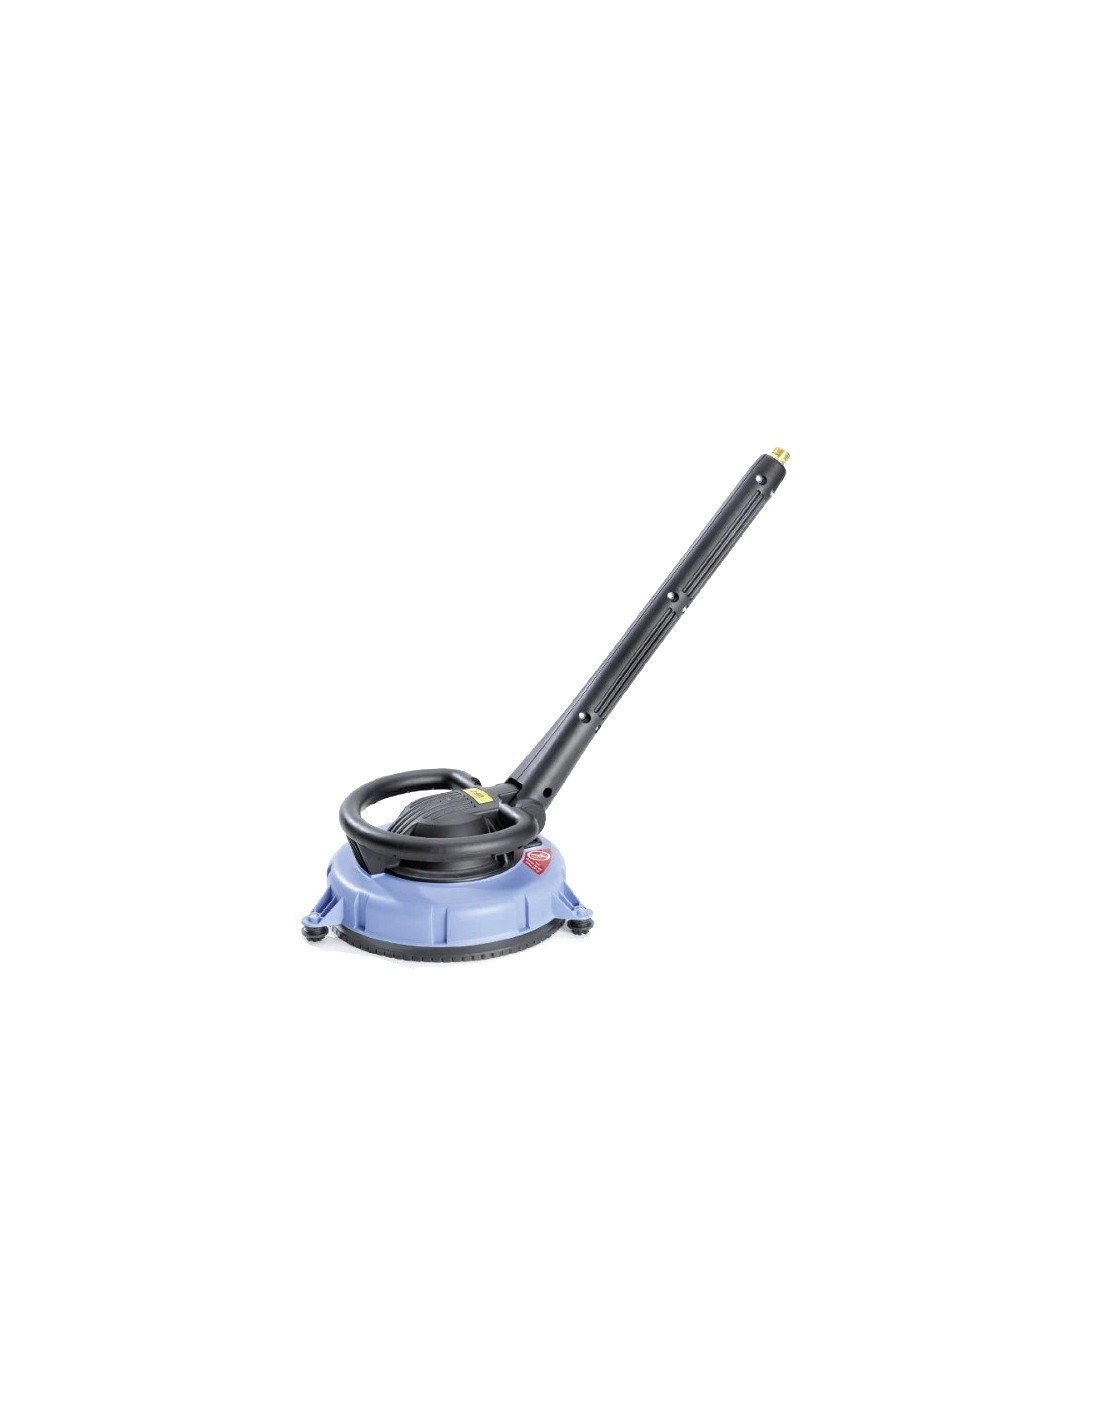 Laveur De Sol Round Cleaner Ufo Long 300 Mm Kranzle 41880 Sob